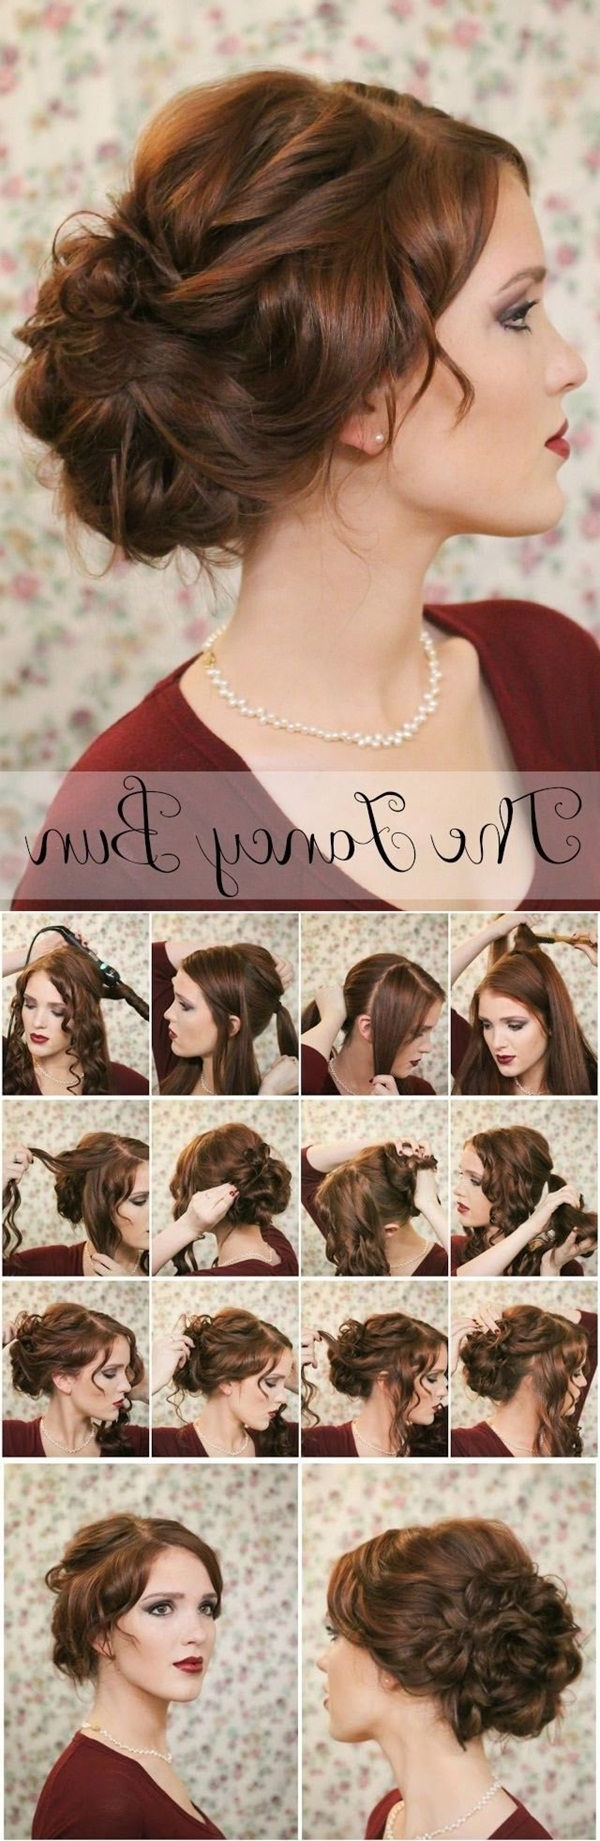 20 Diy Wedding Hairstyles With Tutorials To Try On Your Own Inside Most Popular Diy Wedding Hairstyles For Medium Length Hair (View 2 of 15)